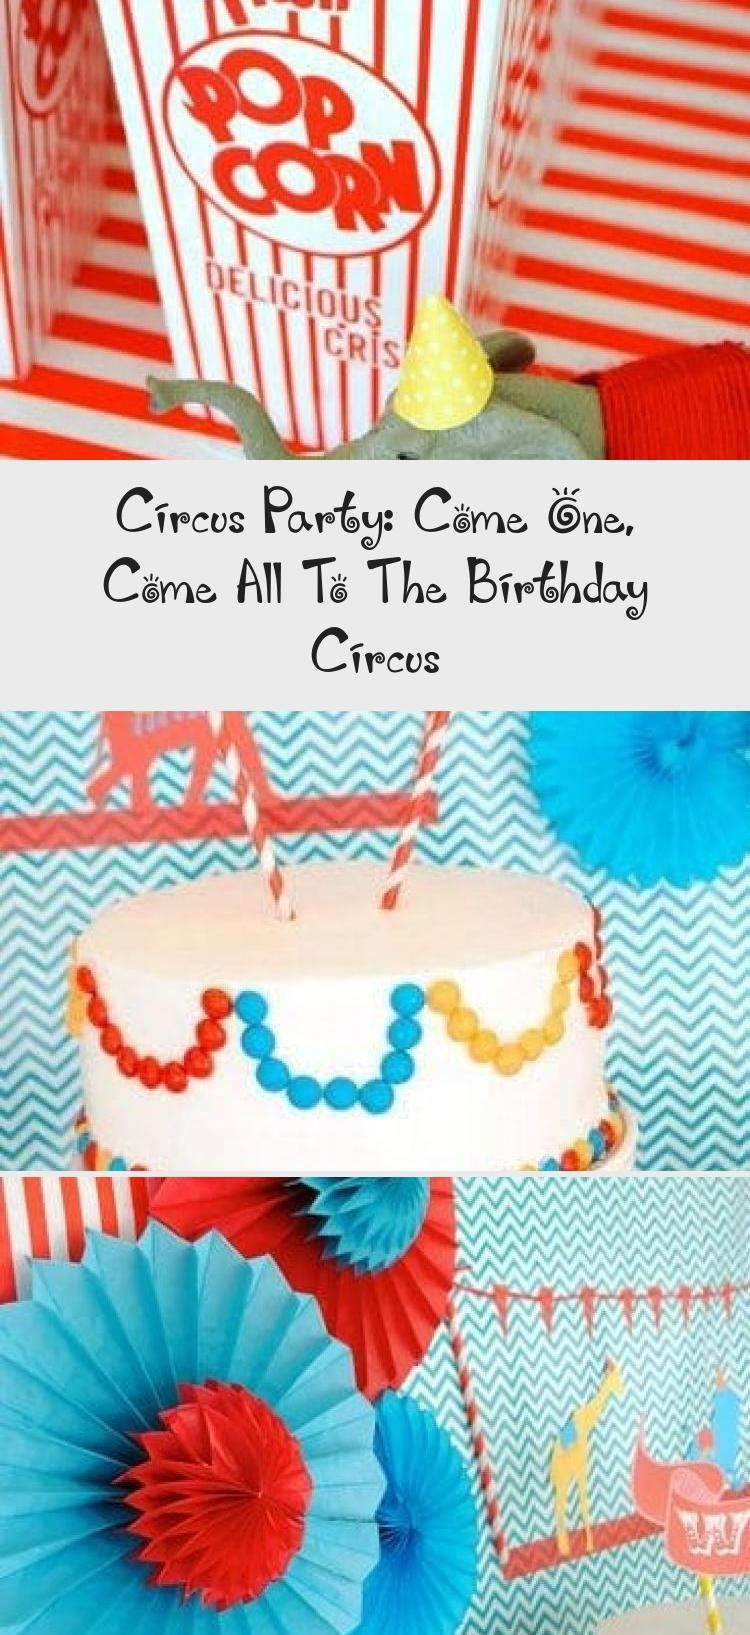 Circus Party Come one, come all to the Birthday Circus